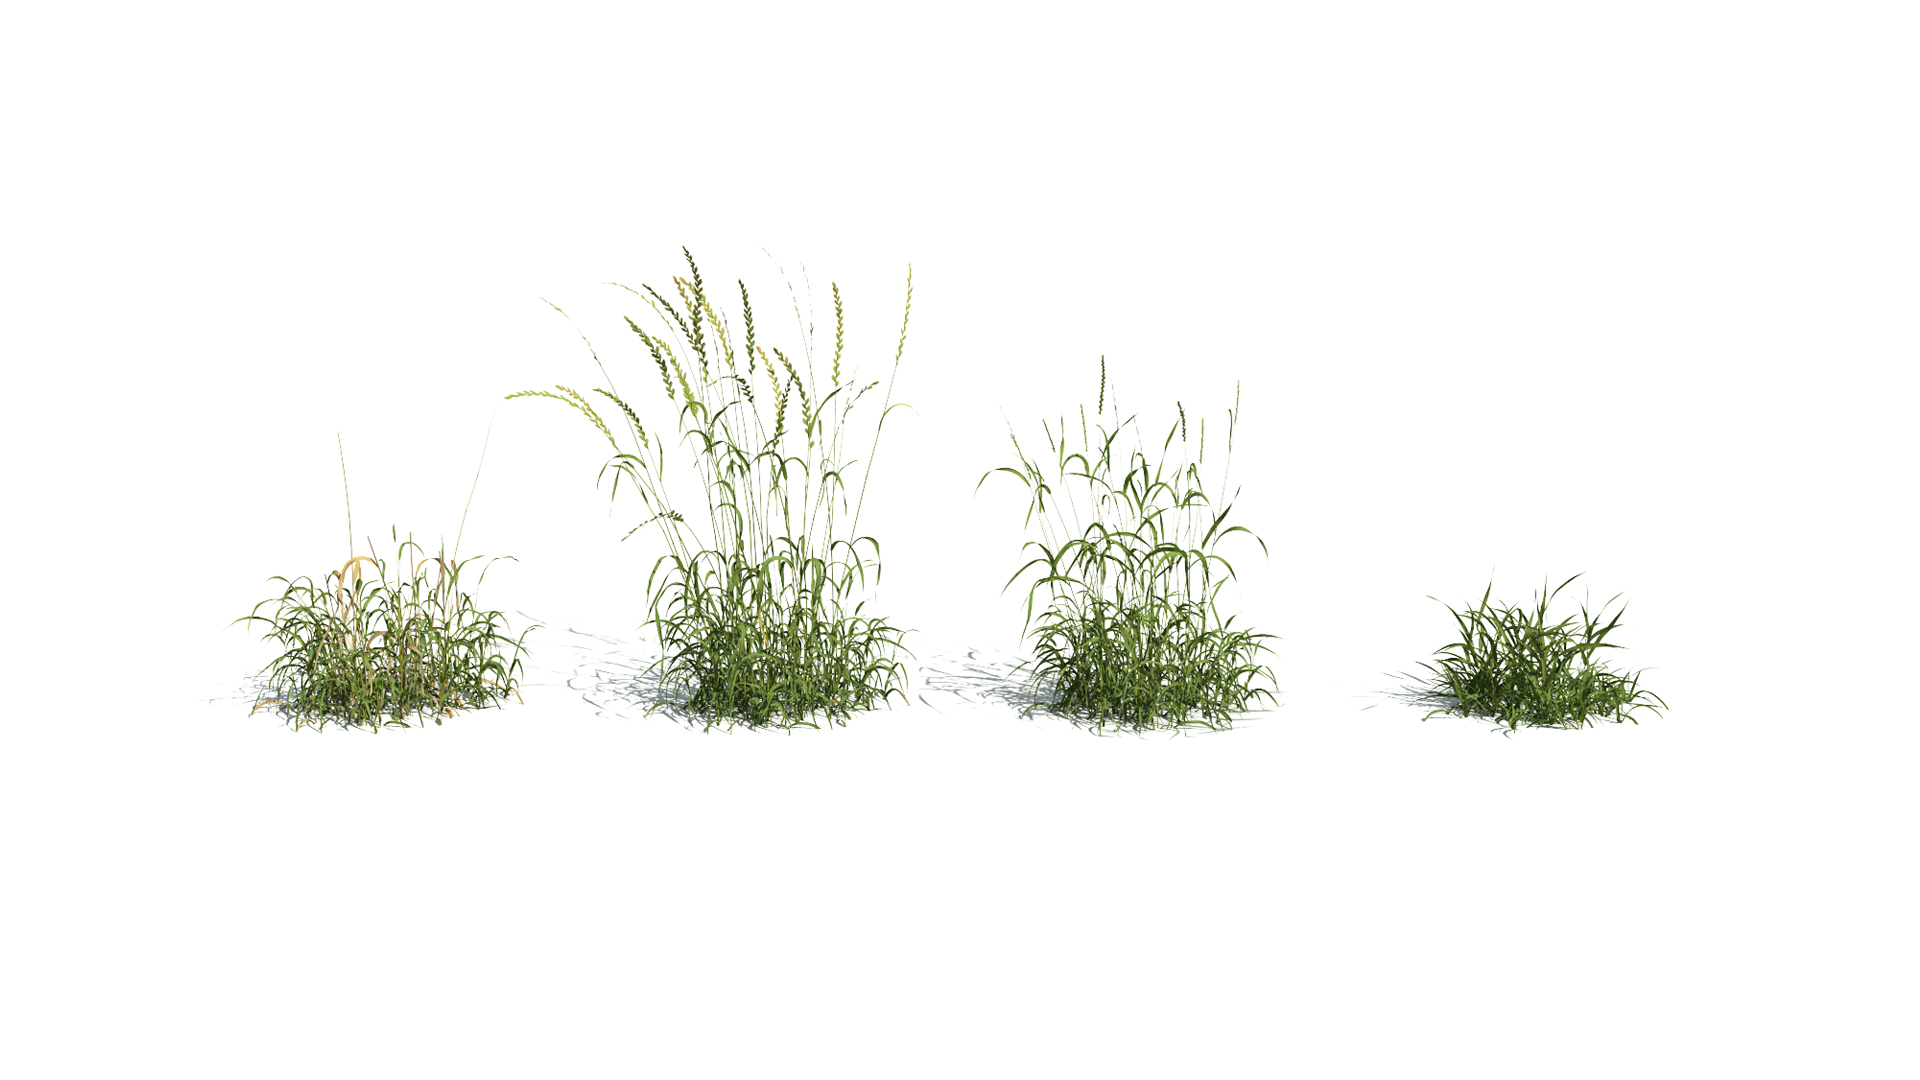 3D model of the English ray grass Lolium perenne season variations